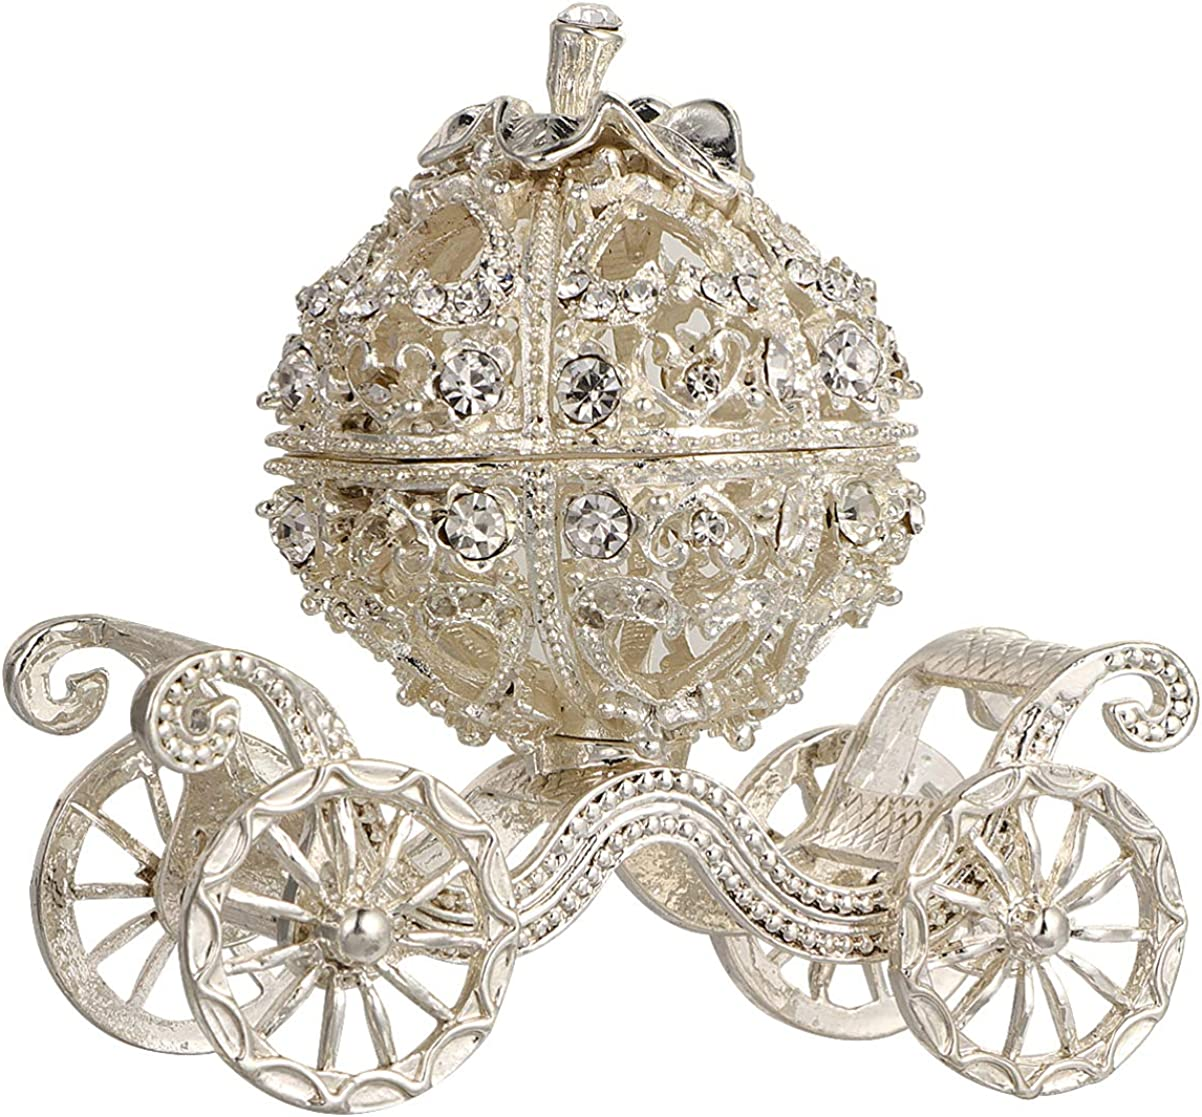 NUOBESTY Cinderella Pumpkin Carriage Decorative Hinged Jewelry Trinket Box Silver Rhinestone Jewelry Display Holder Unique Gift for Grils Women